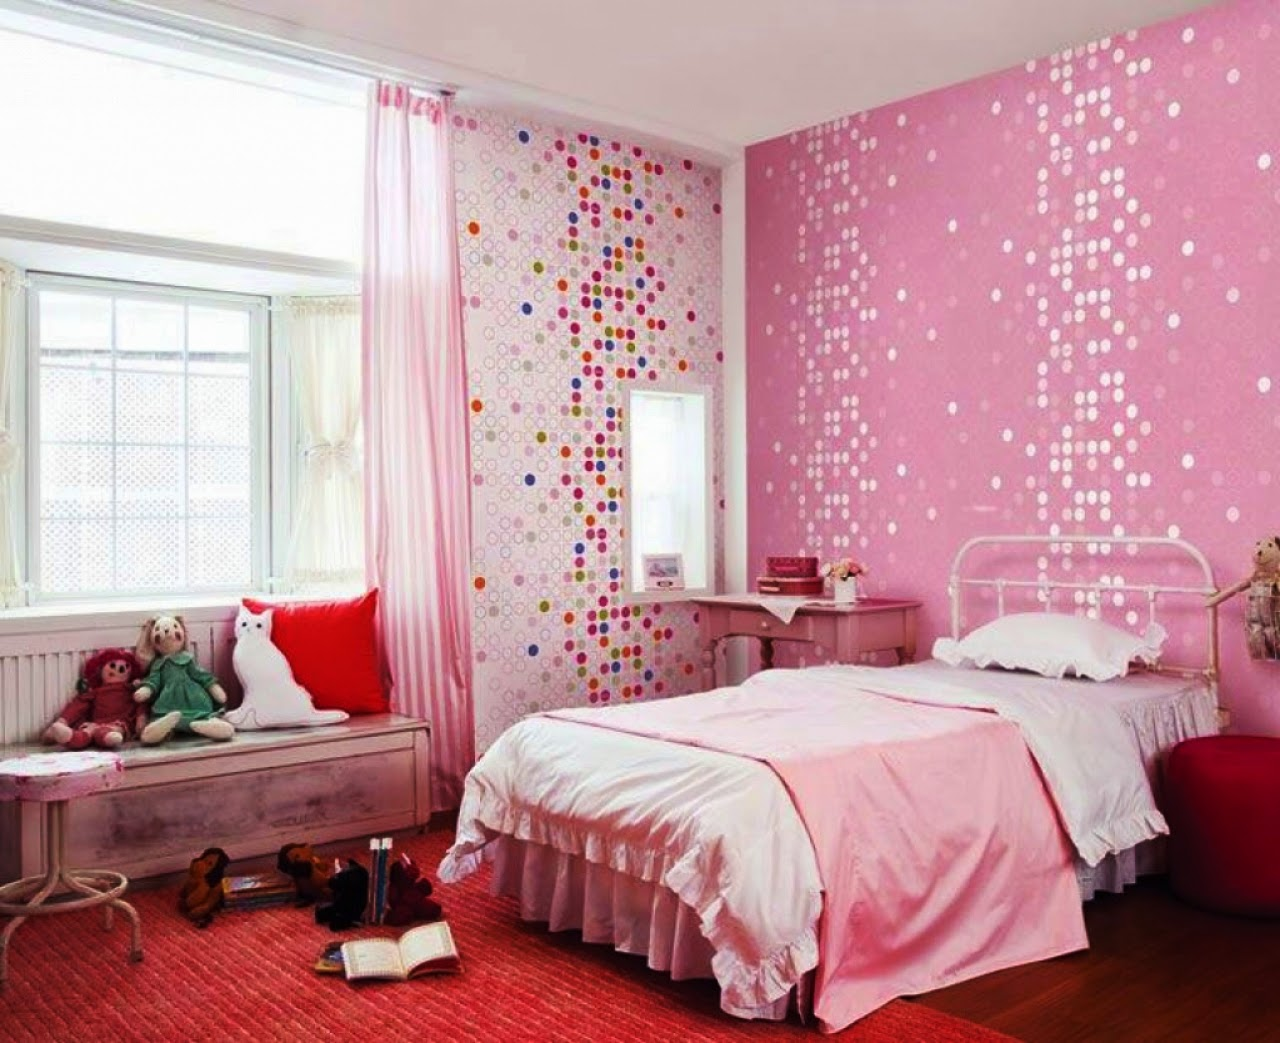 Perfect Girls Room Design and Decor Ideas A Room For Everyone